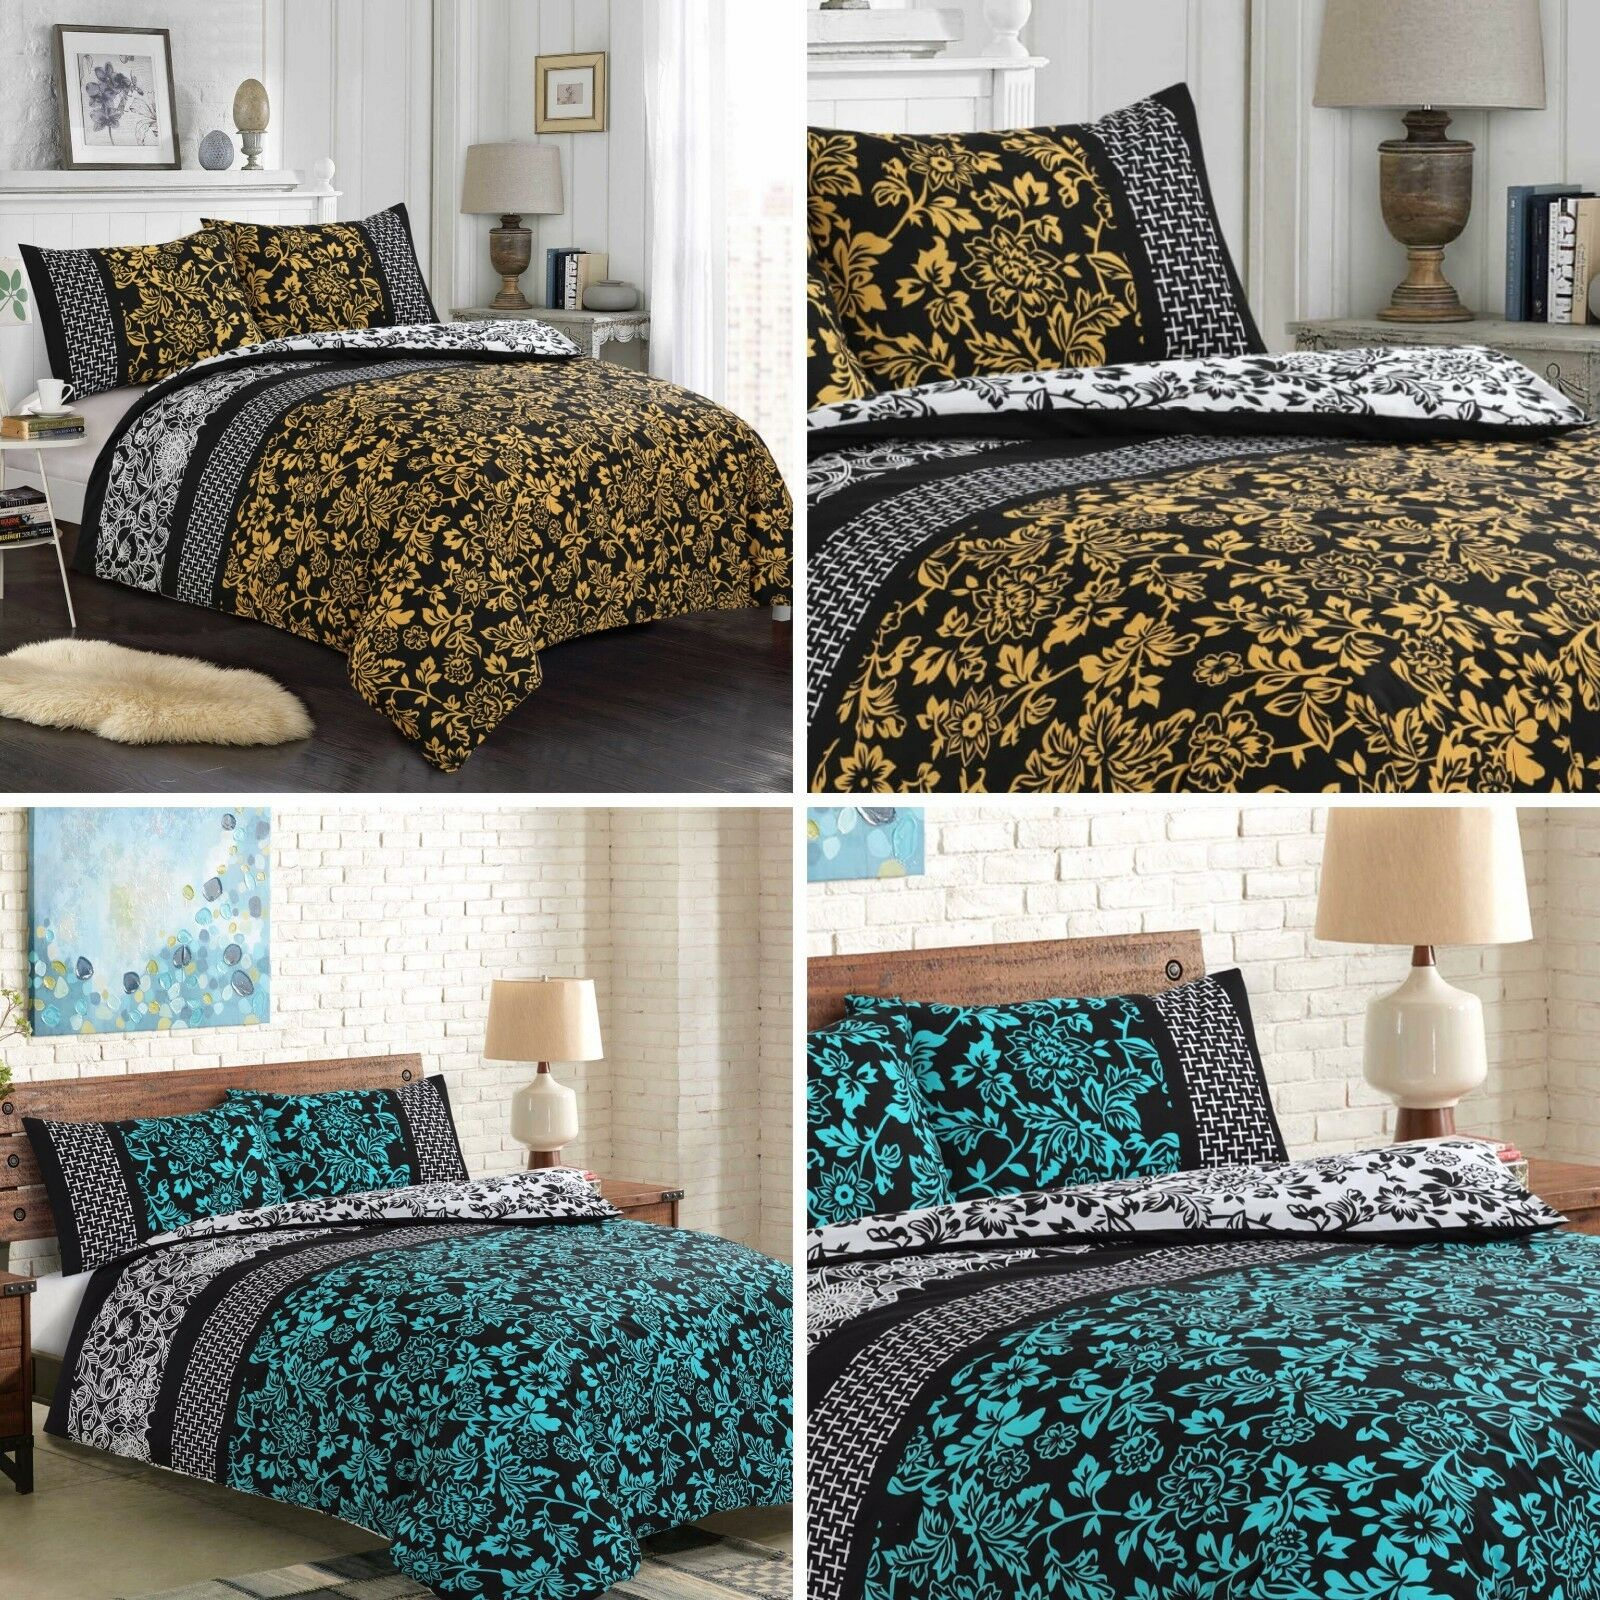 Elegance 100% pure Cotton Printed Duvet Cover Sets+Fitted Sheets All Sizes